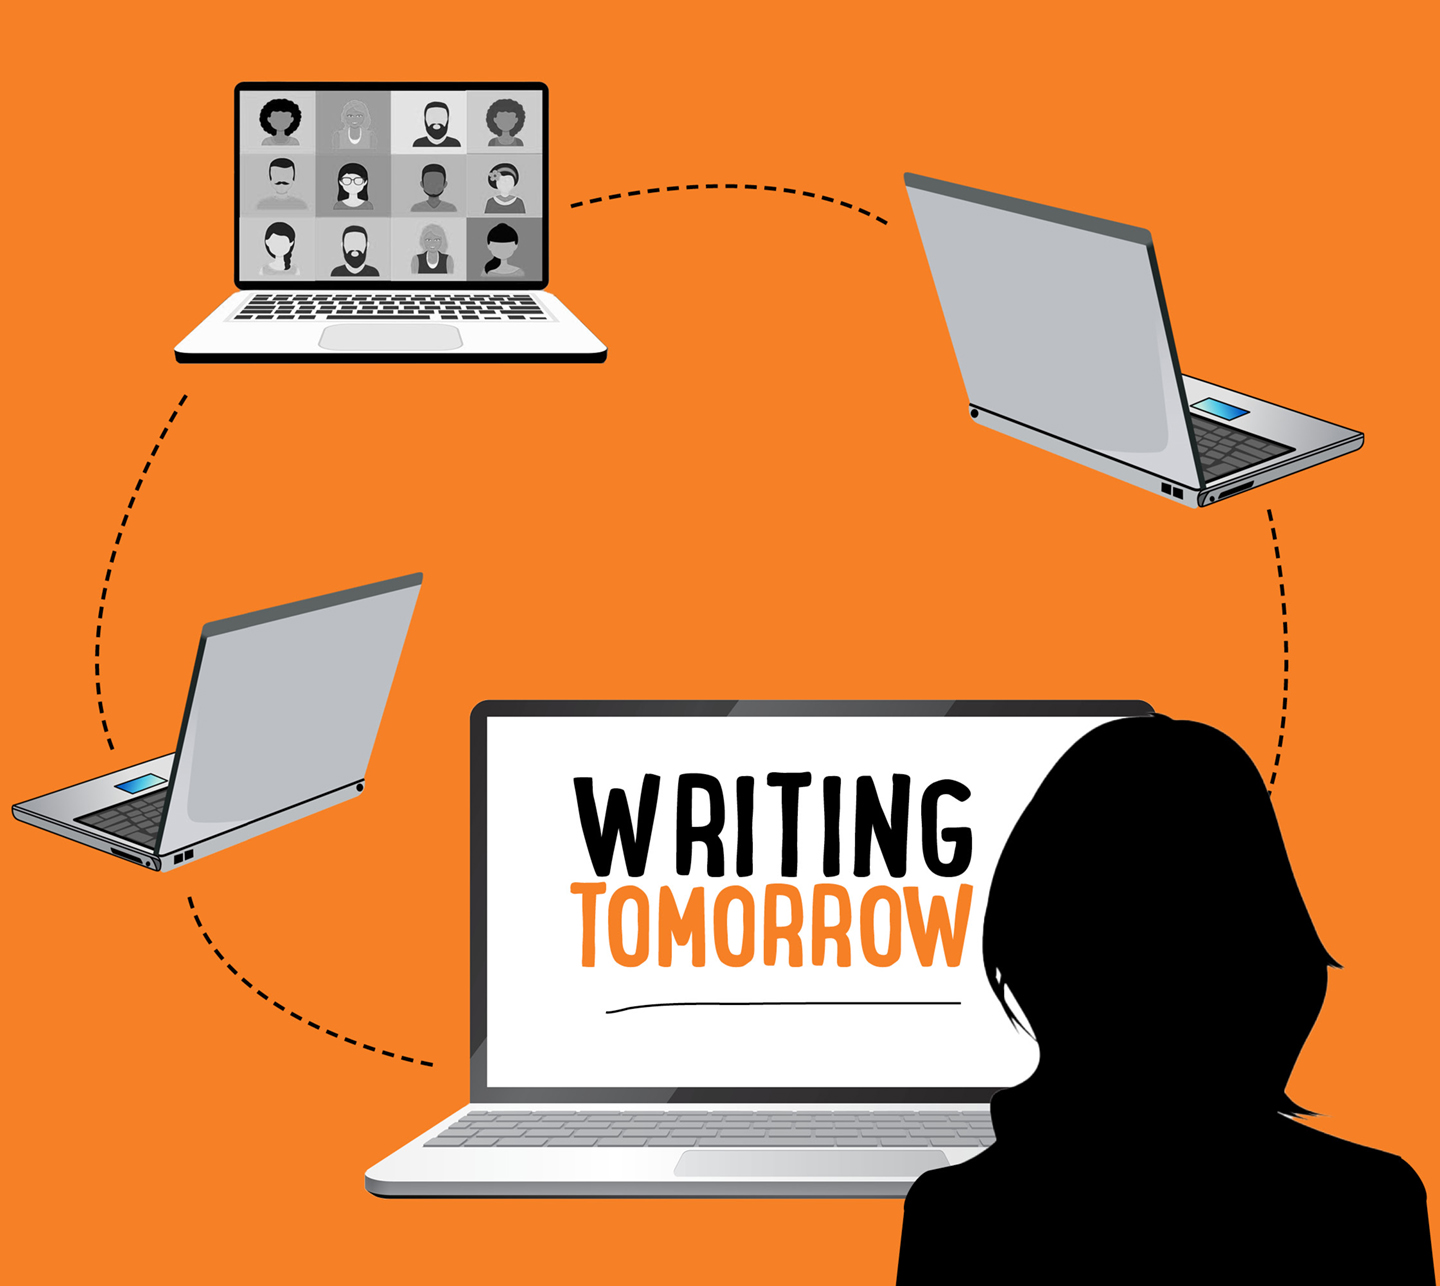 Graphic Image of person sitting in front of computer with Writing Tomorrow on screen, connected to other laptops